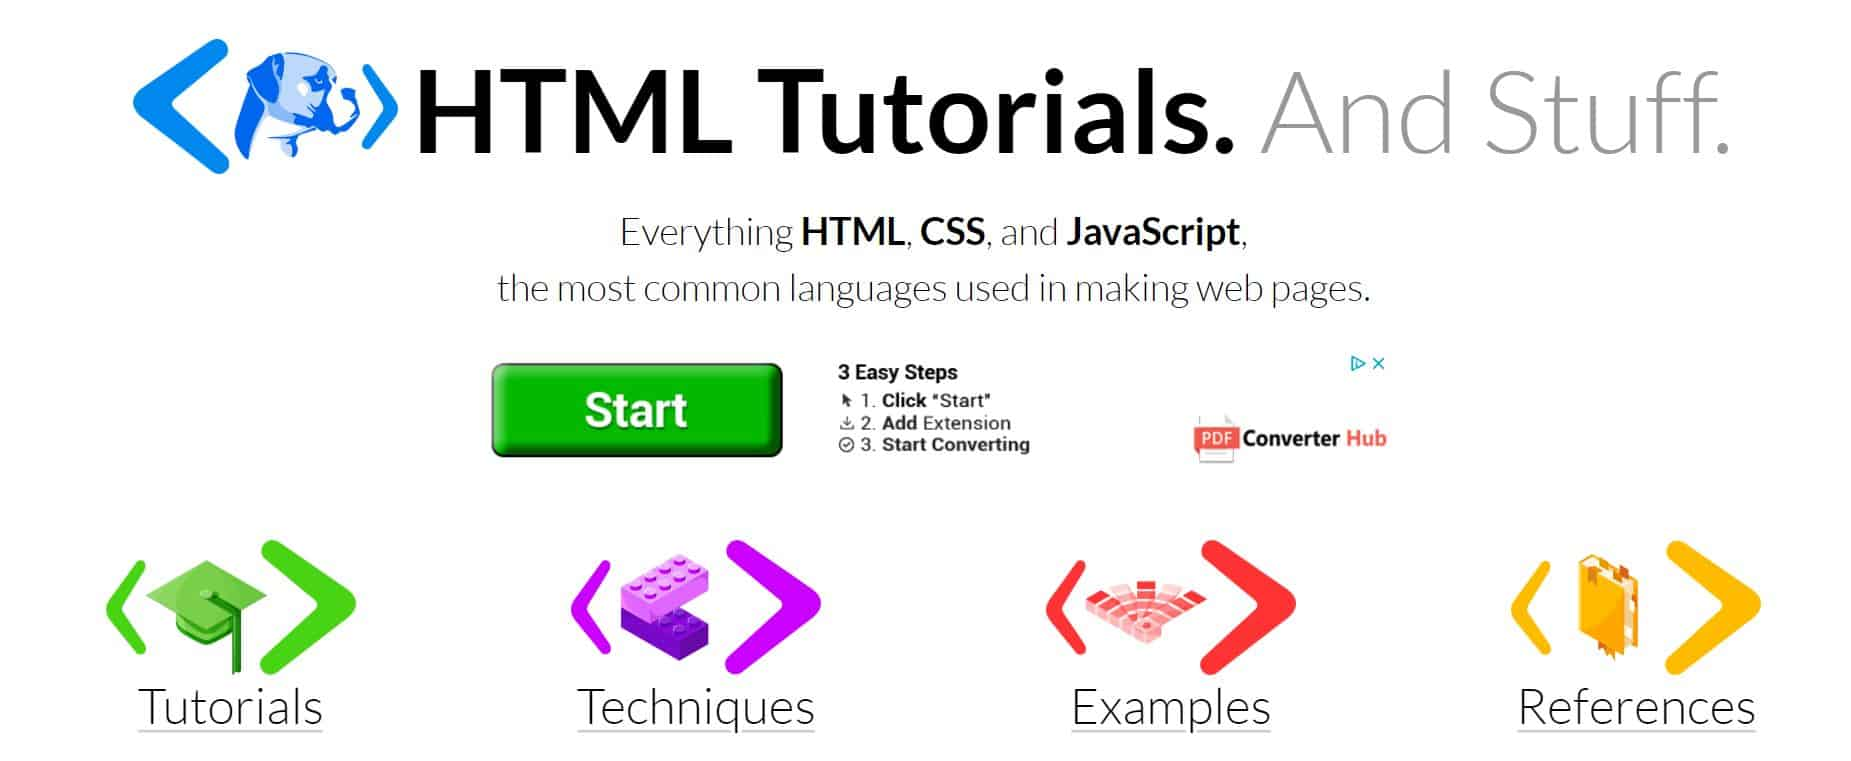 42 Best Online Resources to Learn to Code for Free in 2019